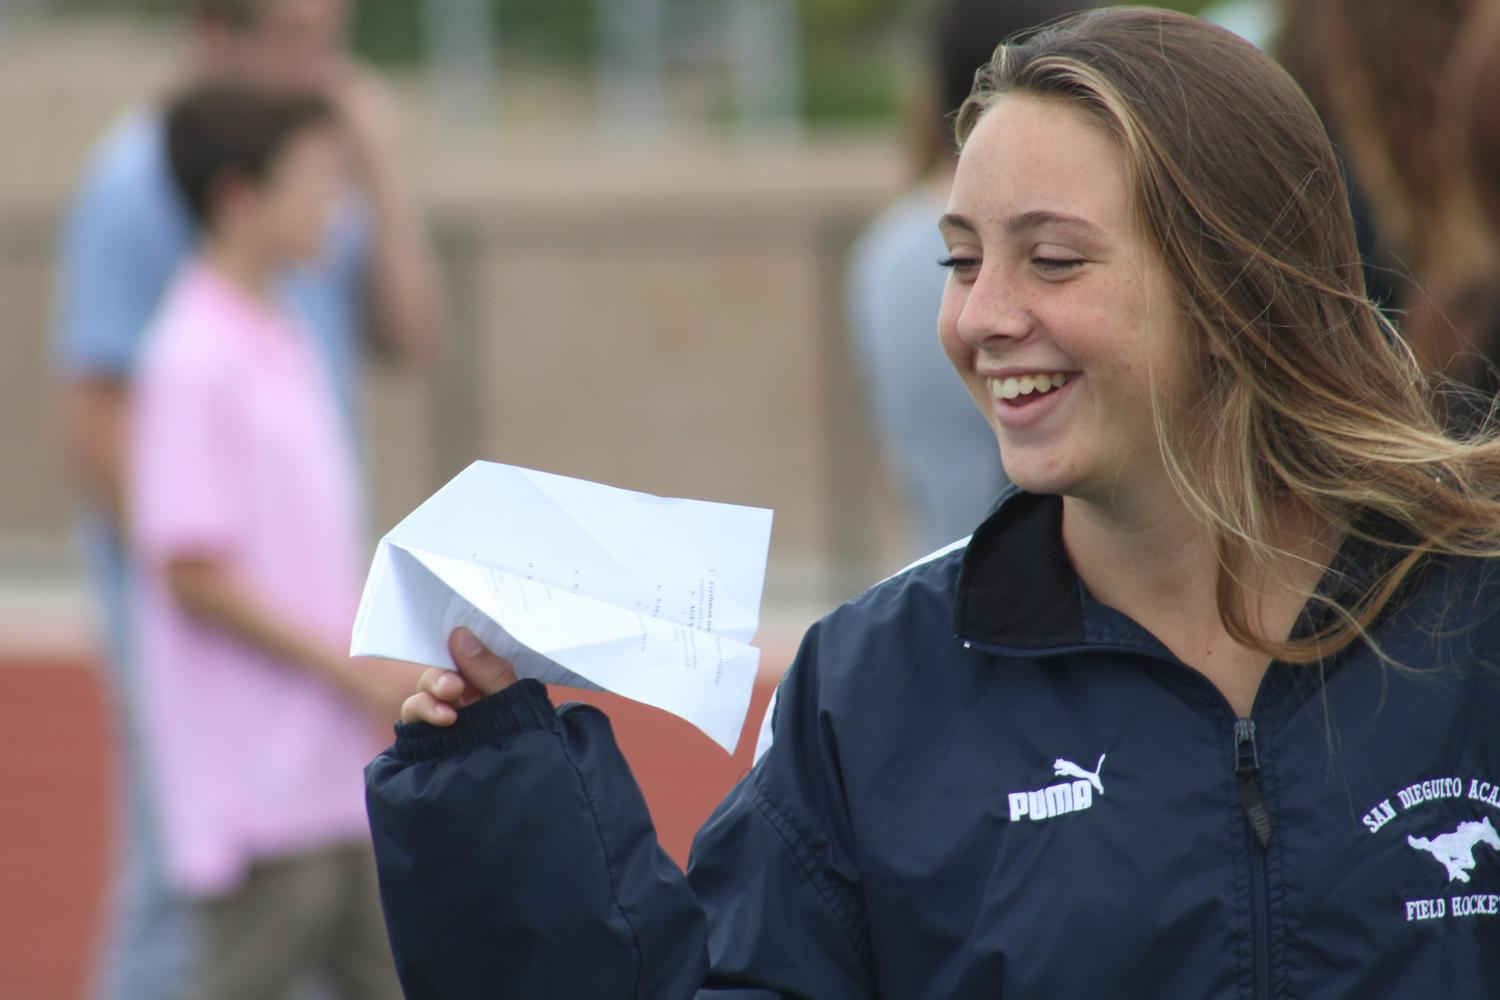 During the Link Crew event, students tested out paper airplanes made with a partner.